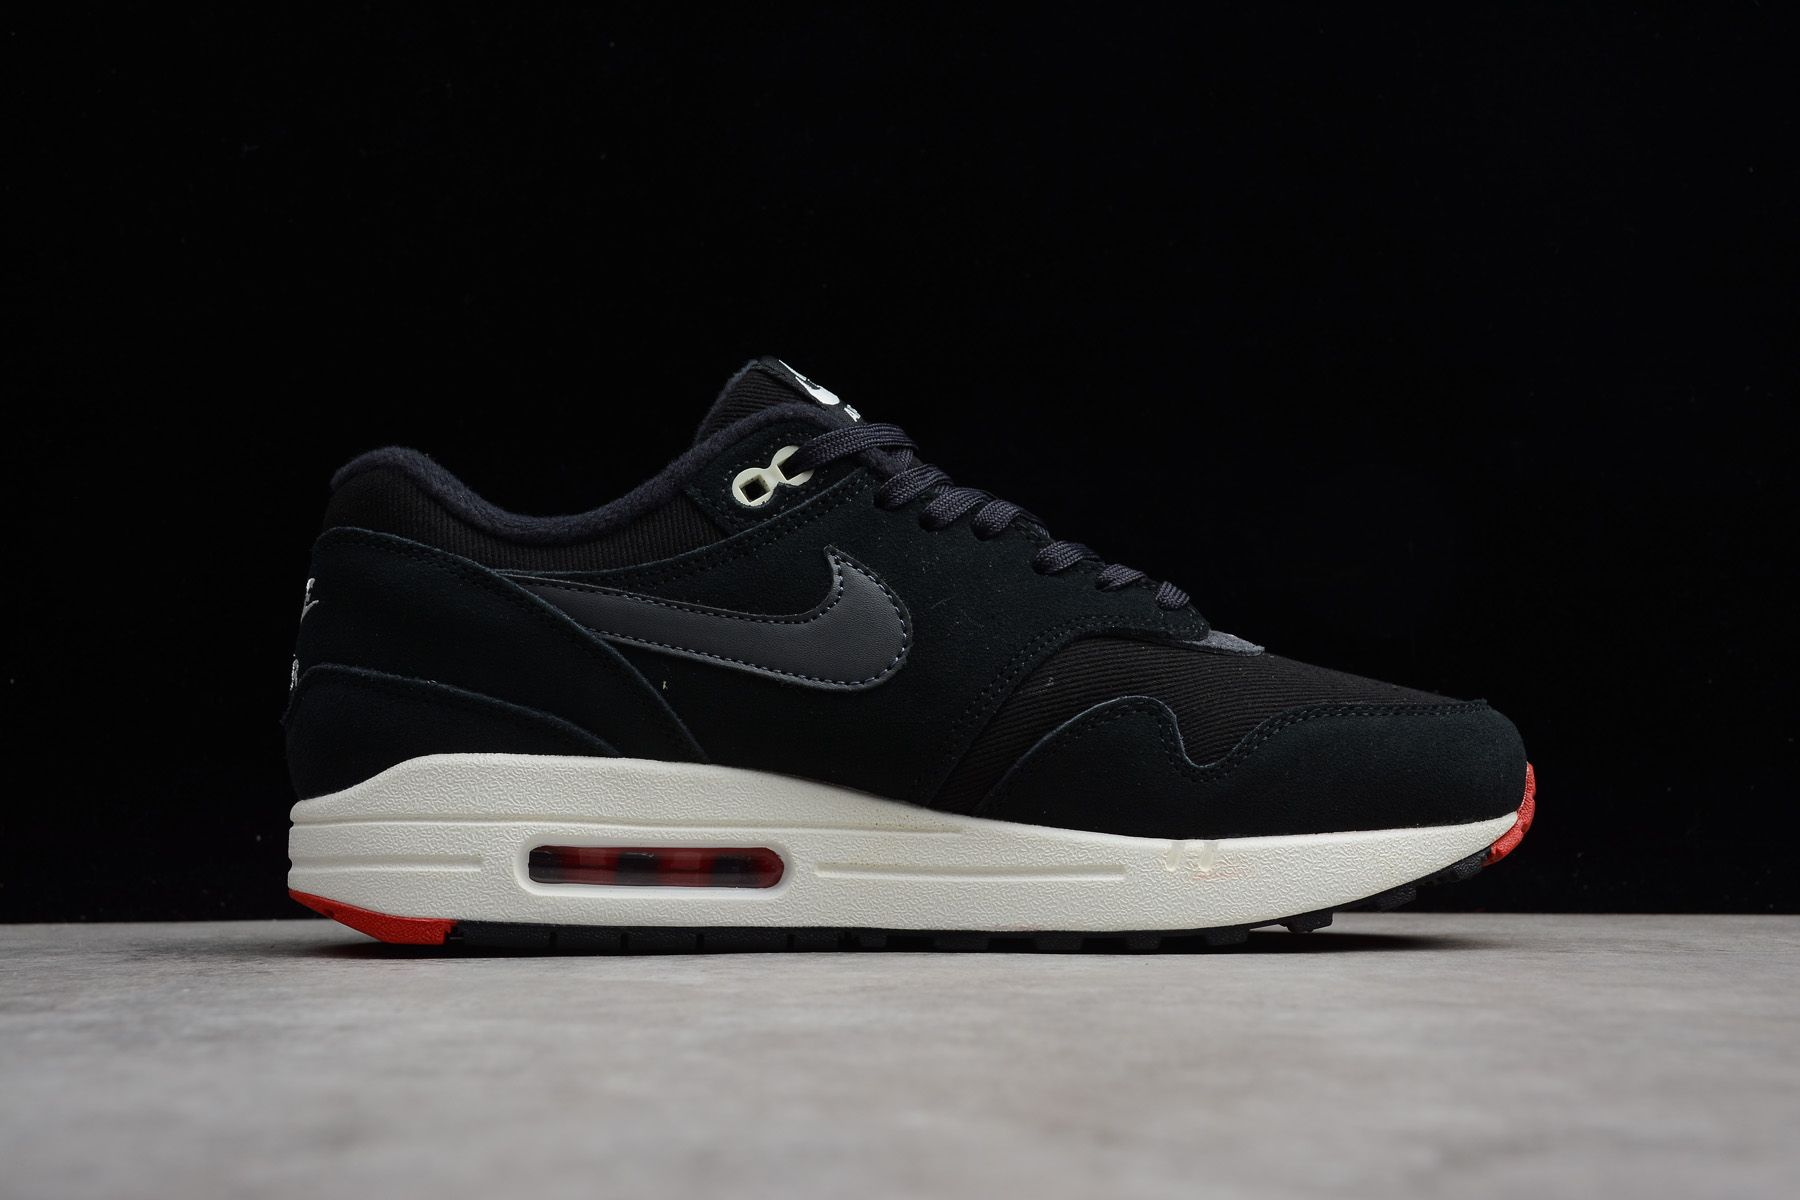 low priced ac3eb e14a9 Nike Air Max 1 Premium Mini Swoosh Bred 875844-007 For Sale